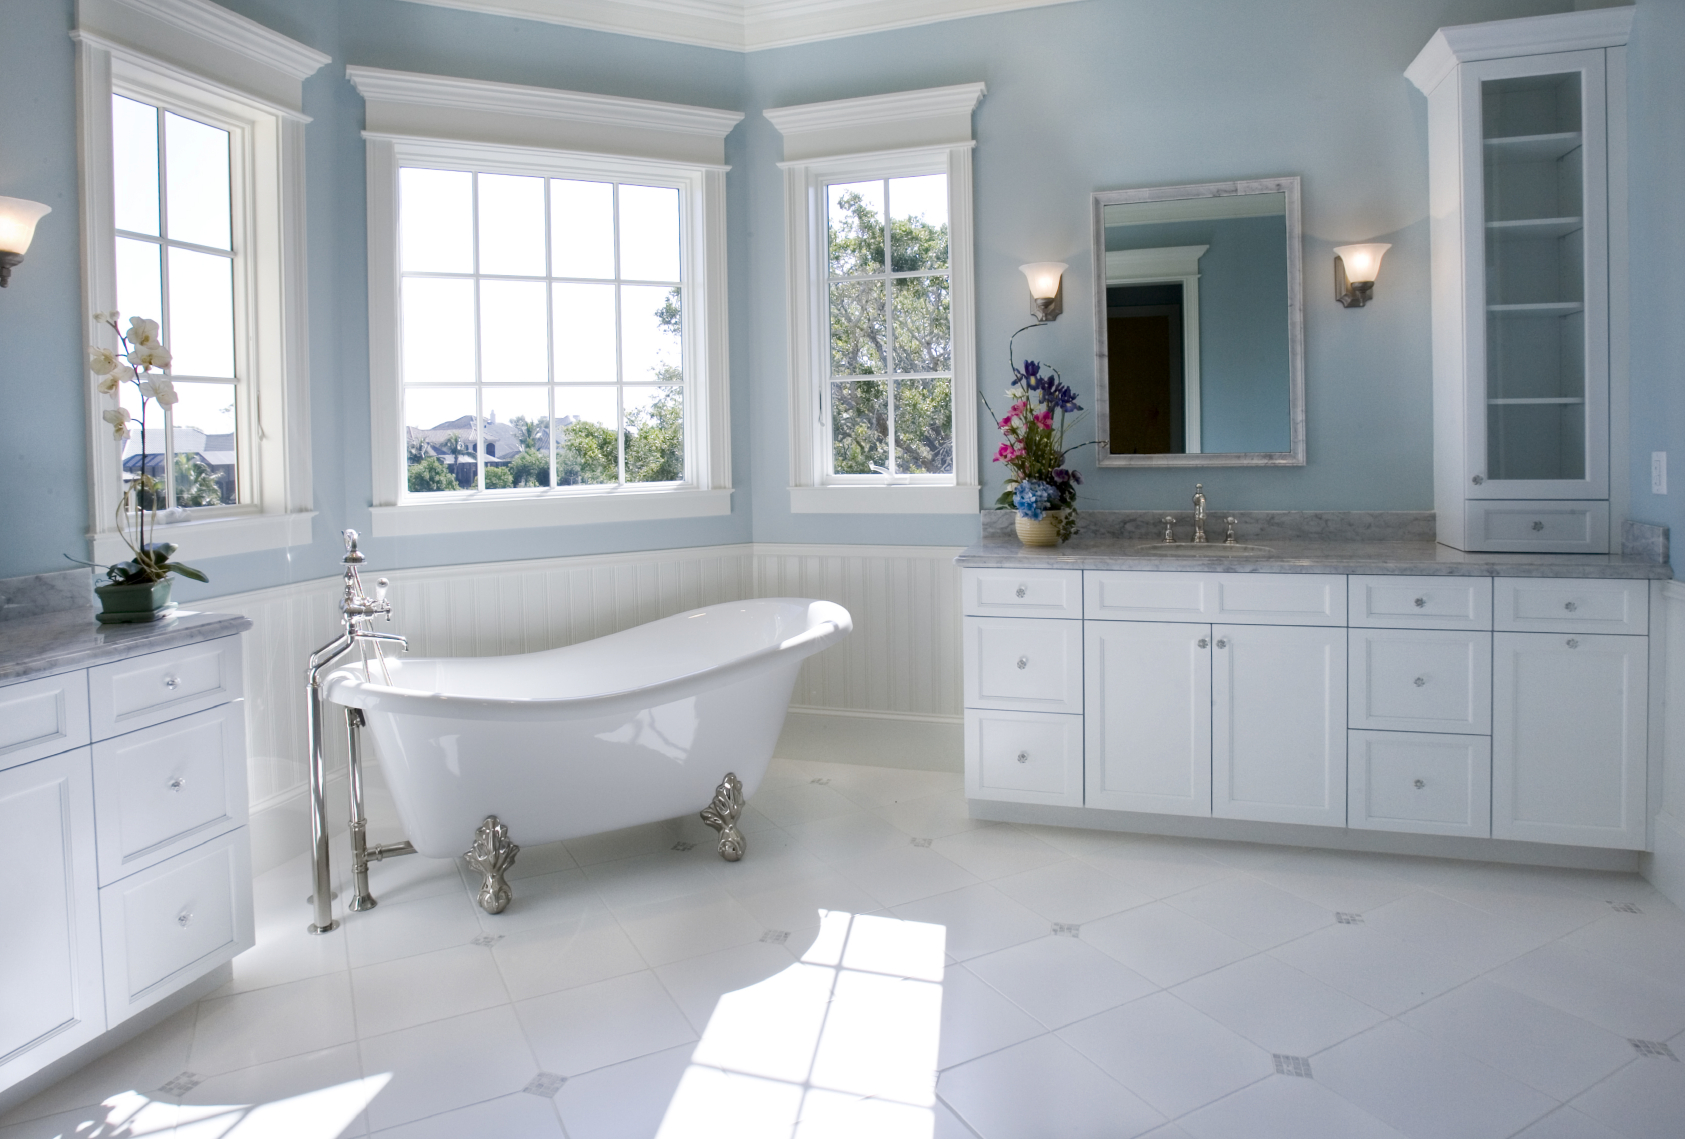 34 luxury white master bathroom ideas pictures for All white bathrooms ideas